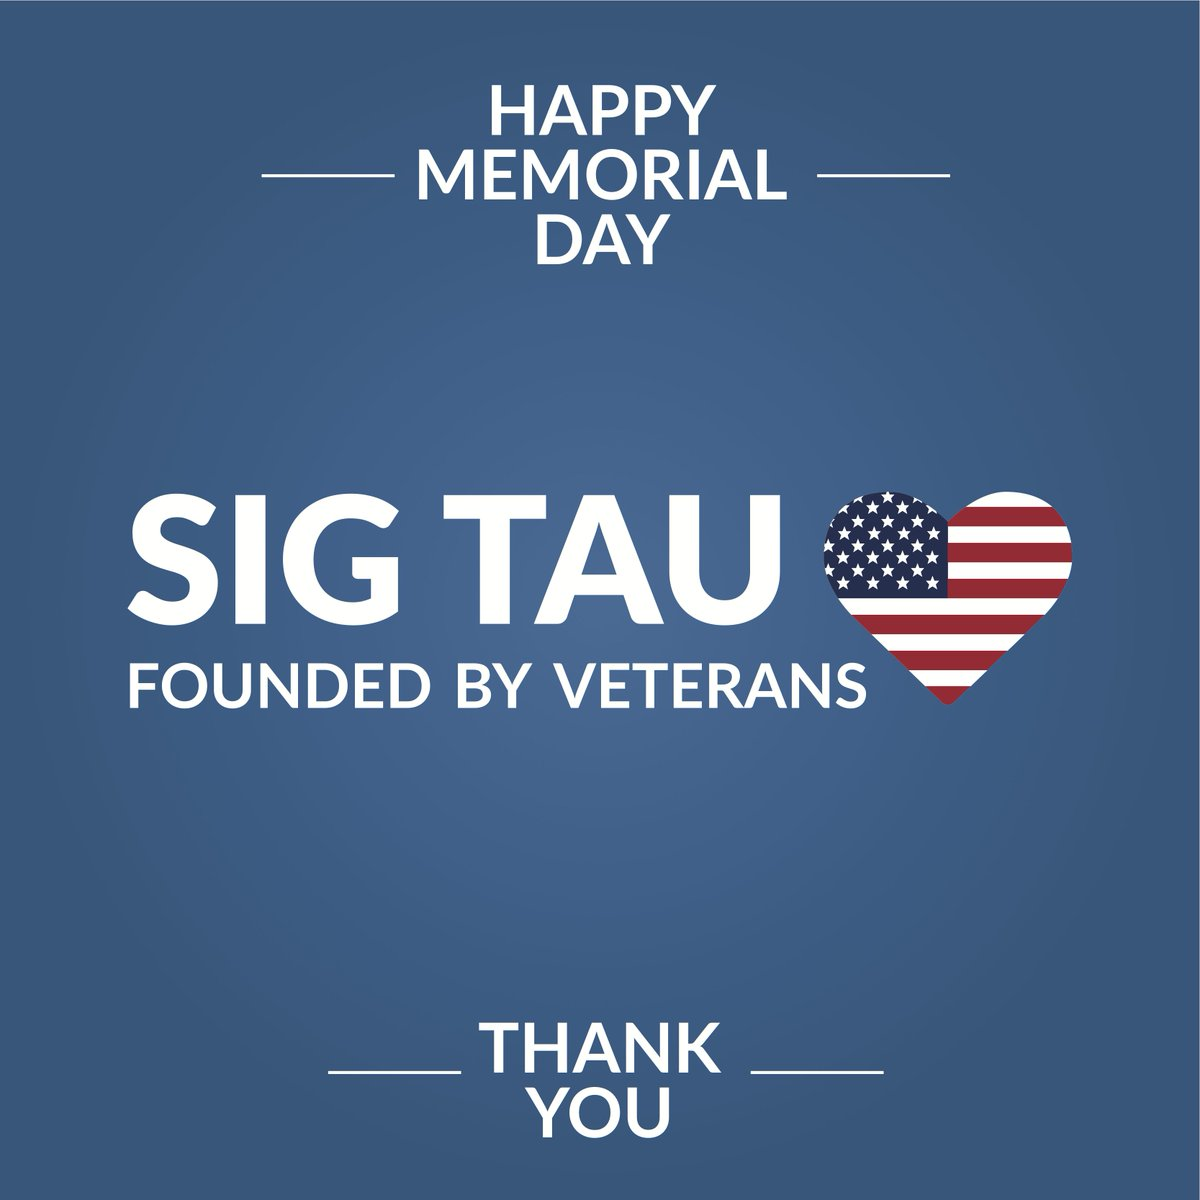 HUMBLED Today we pause to remember the men and women who made the ultimate sacrifice. #MemorialDay #SigTau https://t.co/5hnOuYfNt7